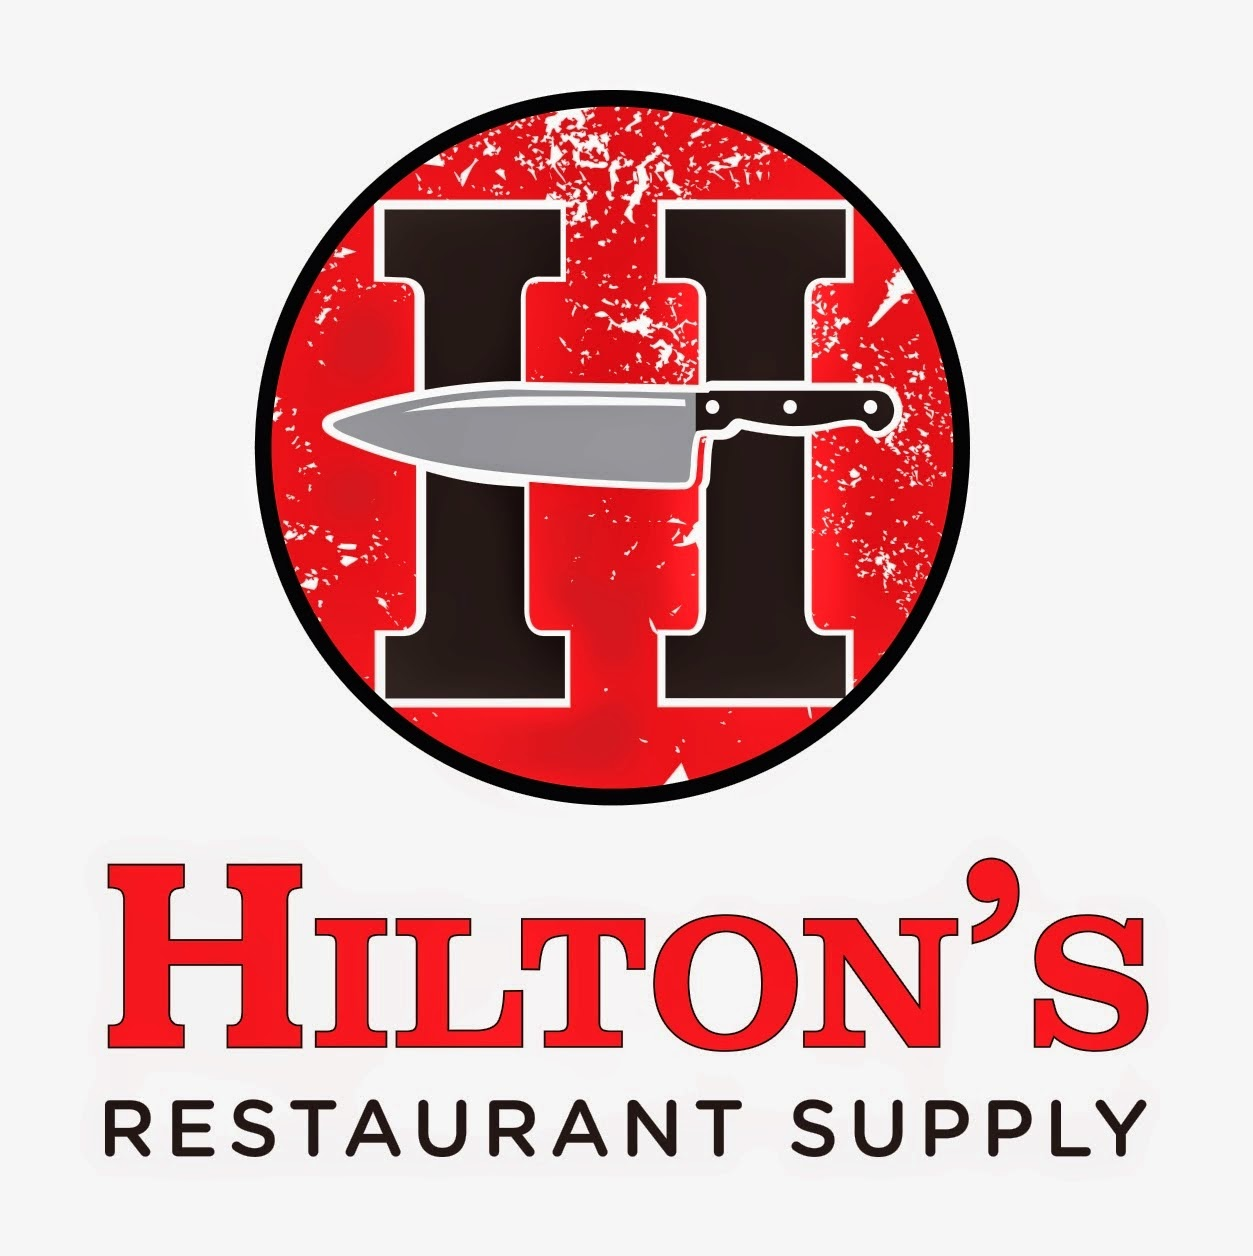 Located In Lafayette, Louisiana, Hiltonu0027s Restaurant Supply Is One Of The  Most Respected And Longest Standing Kitchen Supply Companies In Louisiana.